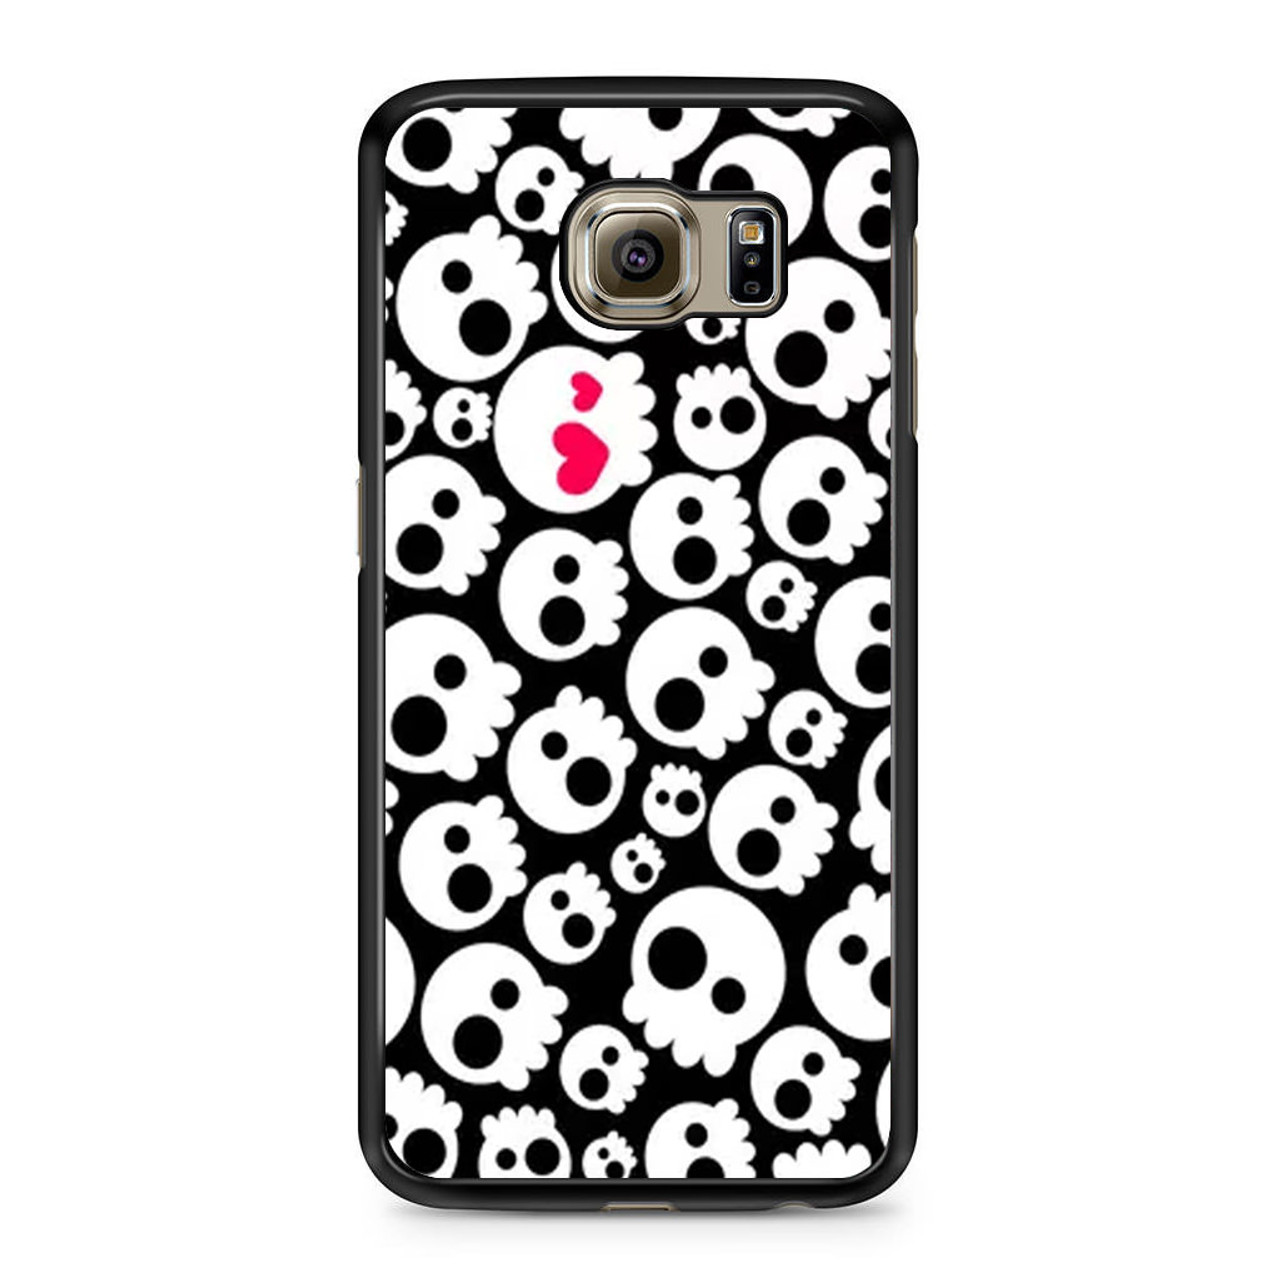 new product 1d190 a8a1d Funny Skull Pattern Samsung Galaxy S6 Case